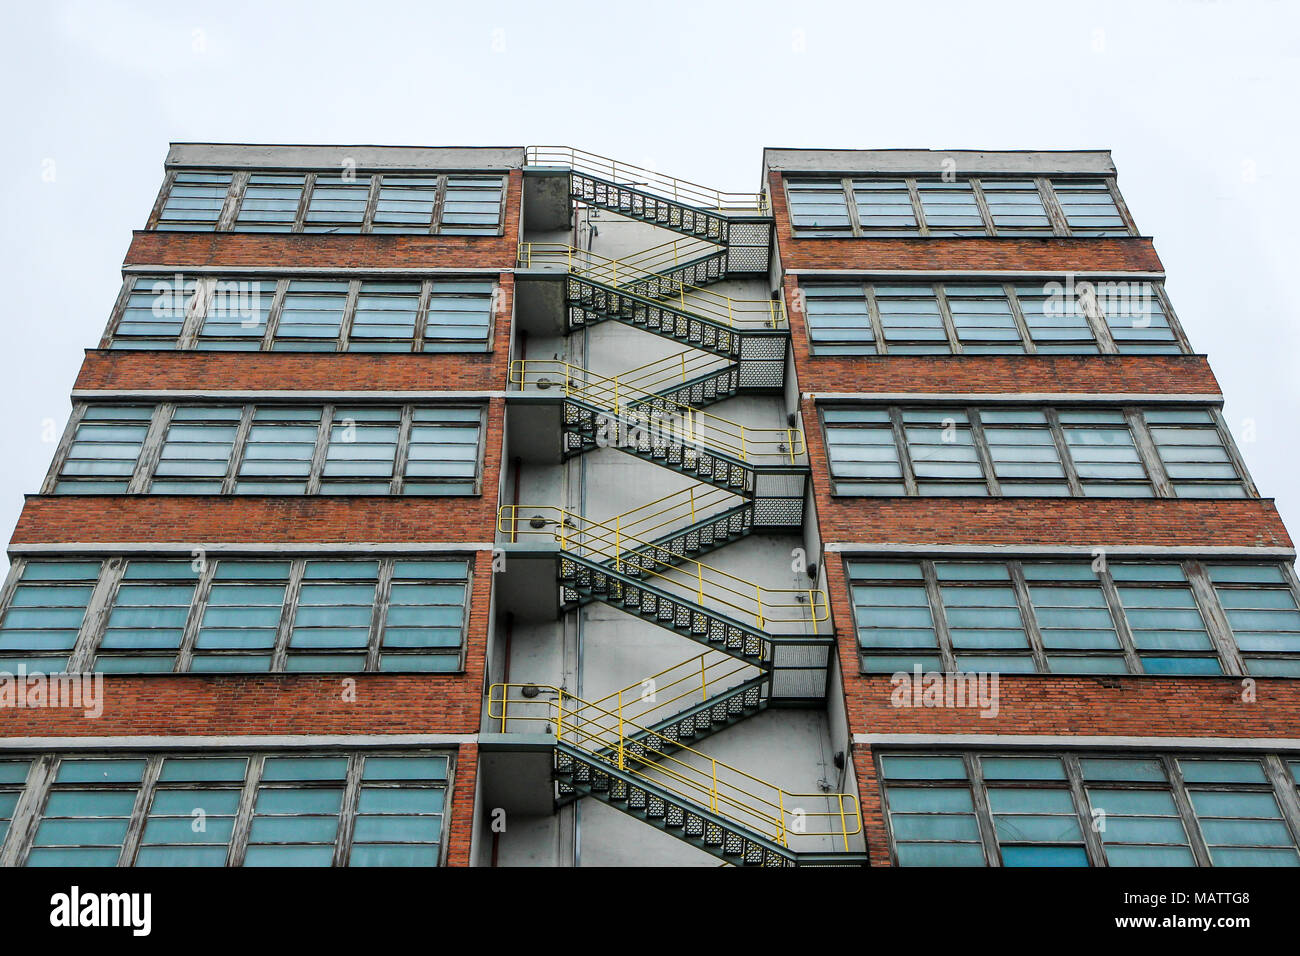 The picture from the old factory, made in functional style. The shapes are strictly geometric and all is submitted to the function. Interesting archit - Stock Image